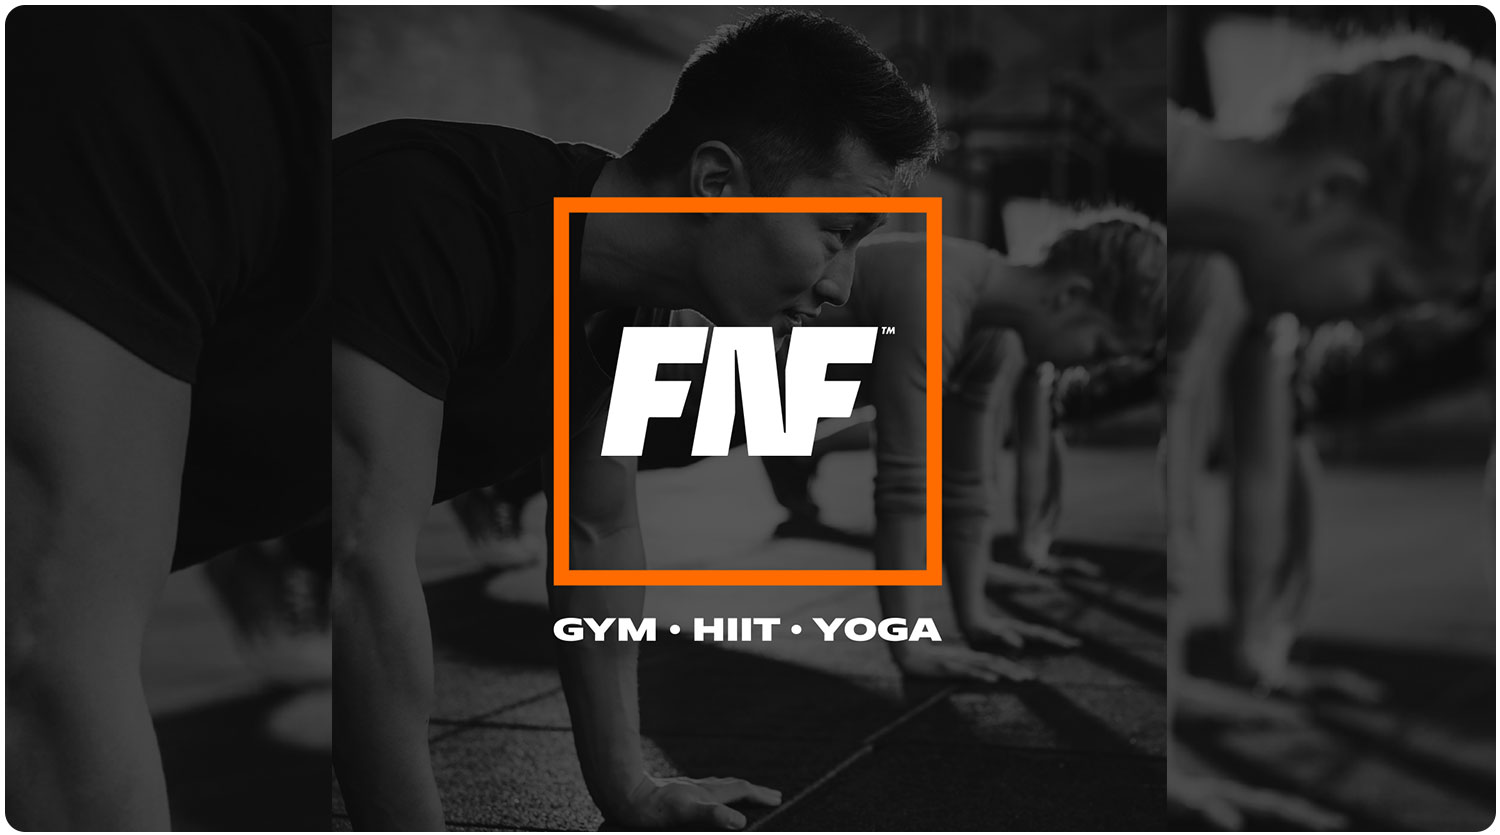 85% off – Experience Your Fitness, Your Way. It's only $14 for for 14 days unlimited Gym, HIIT and more at Fit n Fast Charlestown. Whether you are a new, a HIIT junkie or a lifter, experience your workout your way. Normally $94.90 Save $80.90